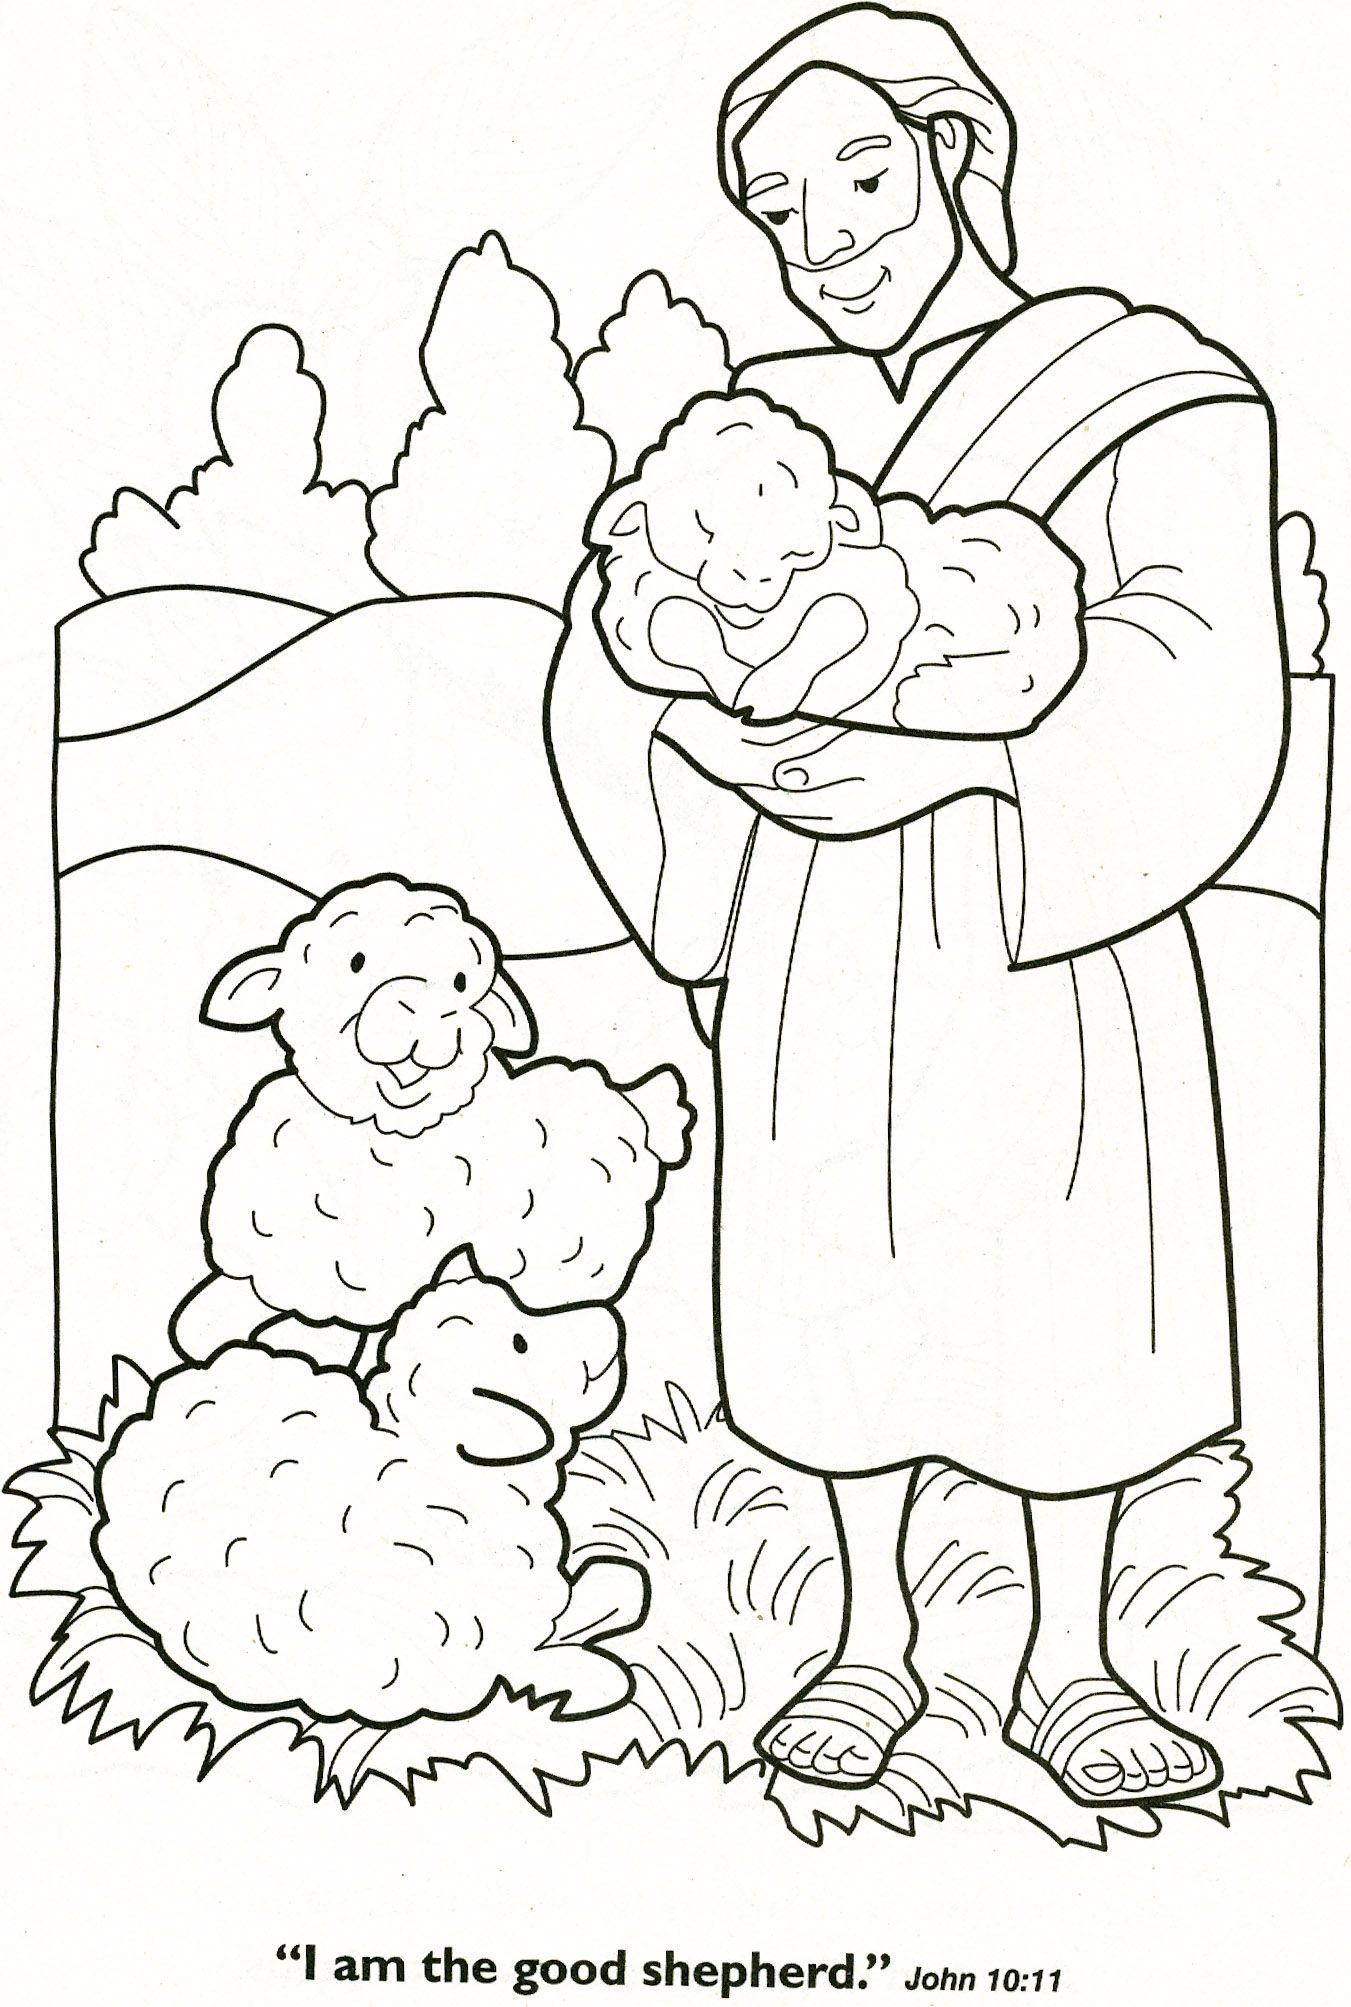 The Good Shepherd Sunday School Coloring Pages Bible Coloring